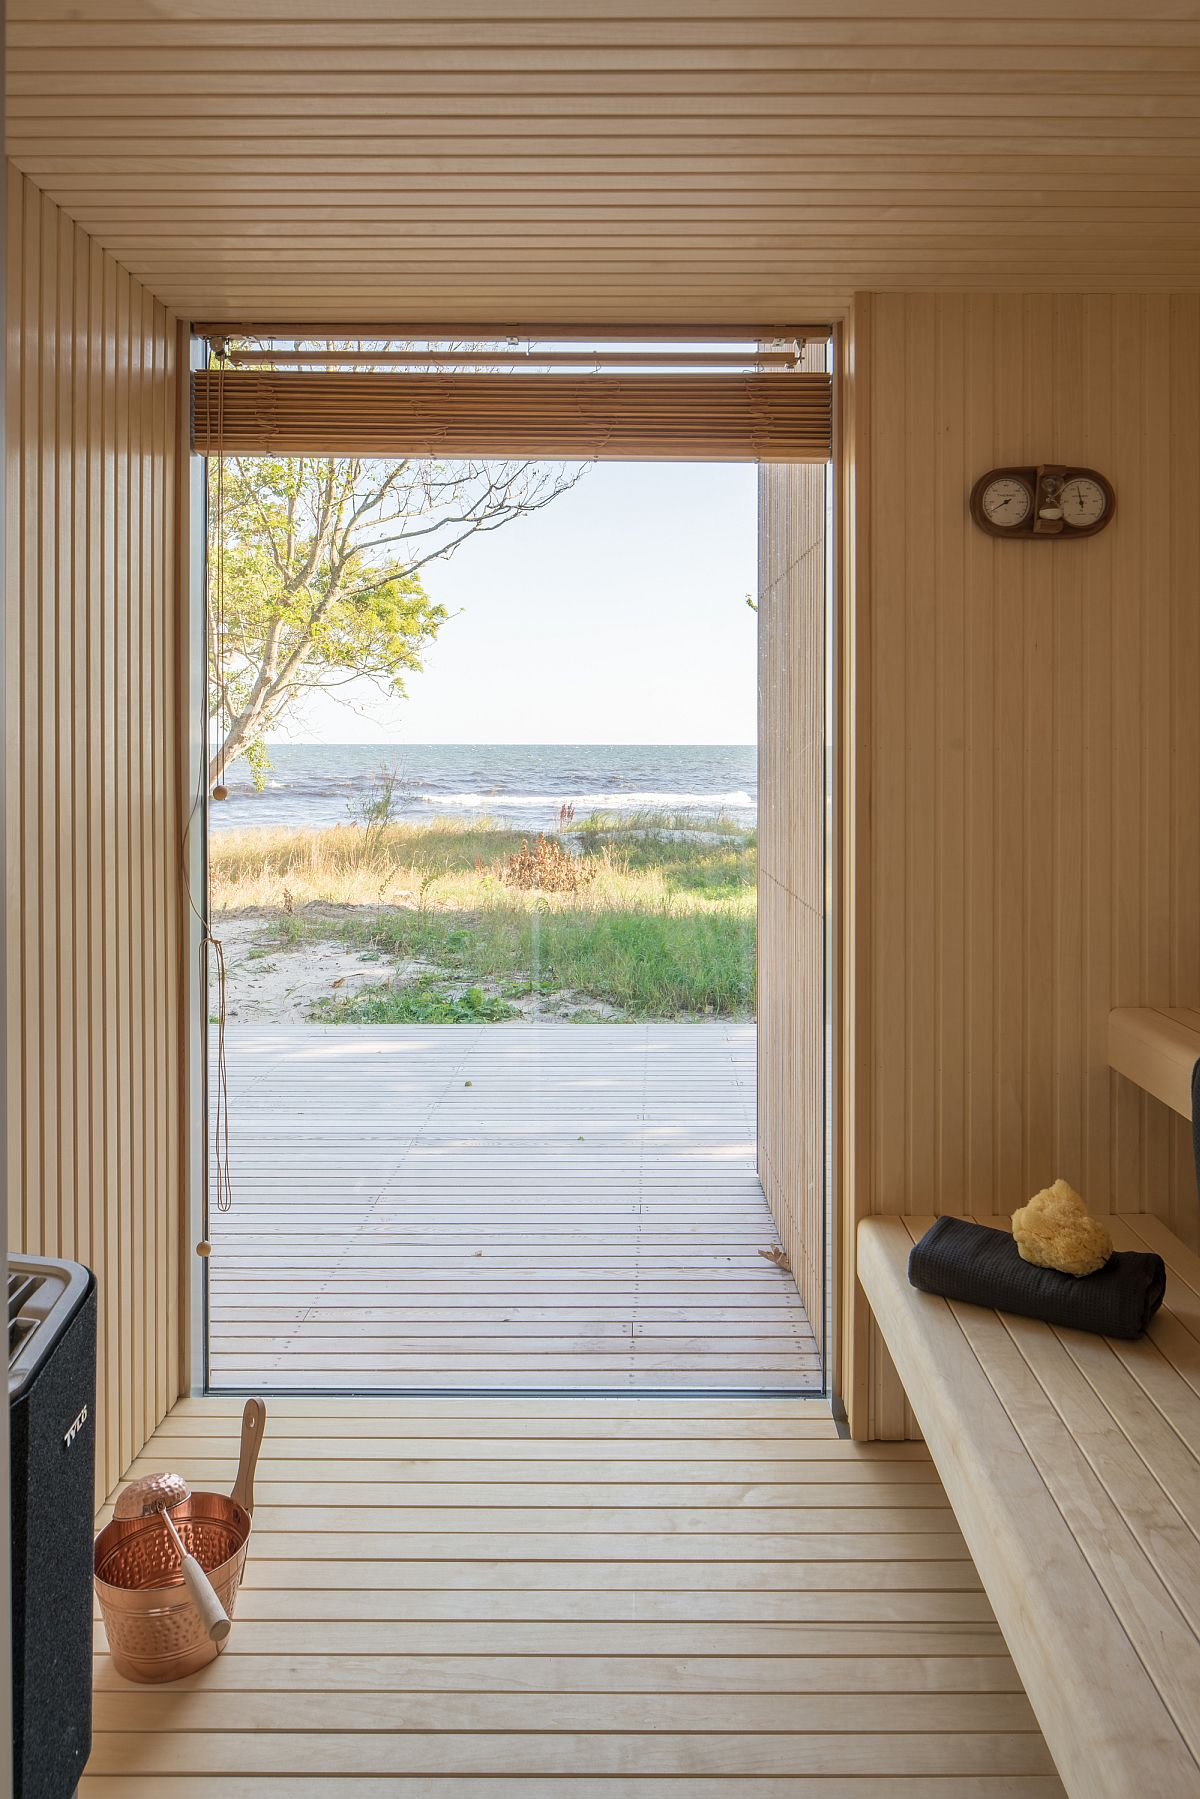 Sauna room of the summer house offers view of the beach and the Baltic Sea